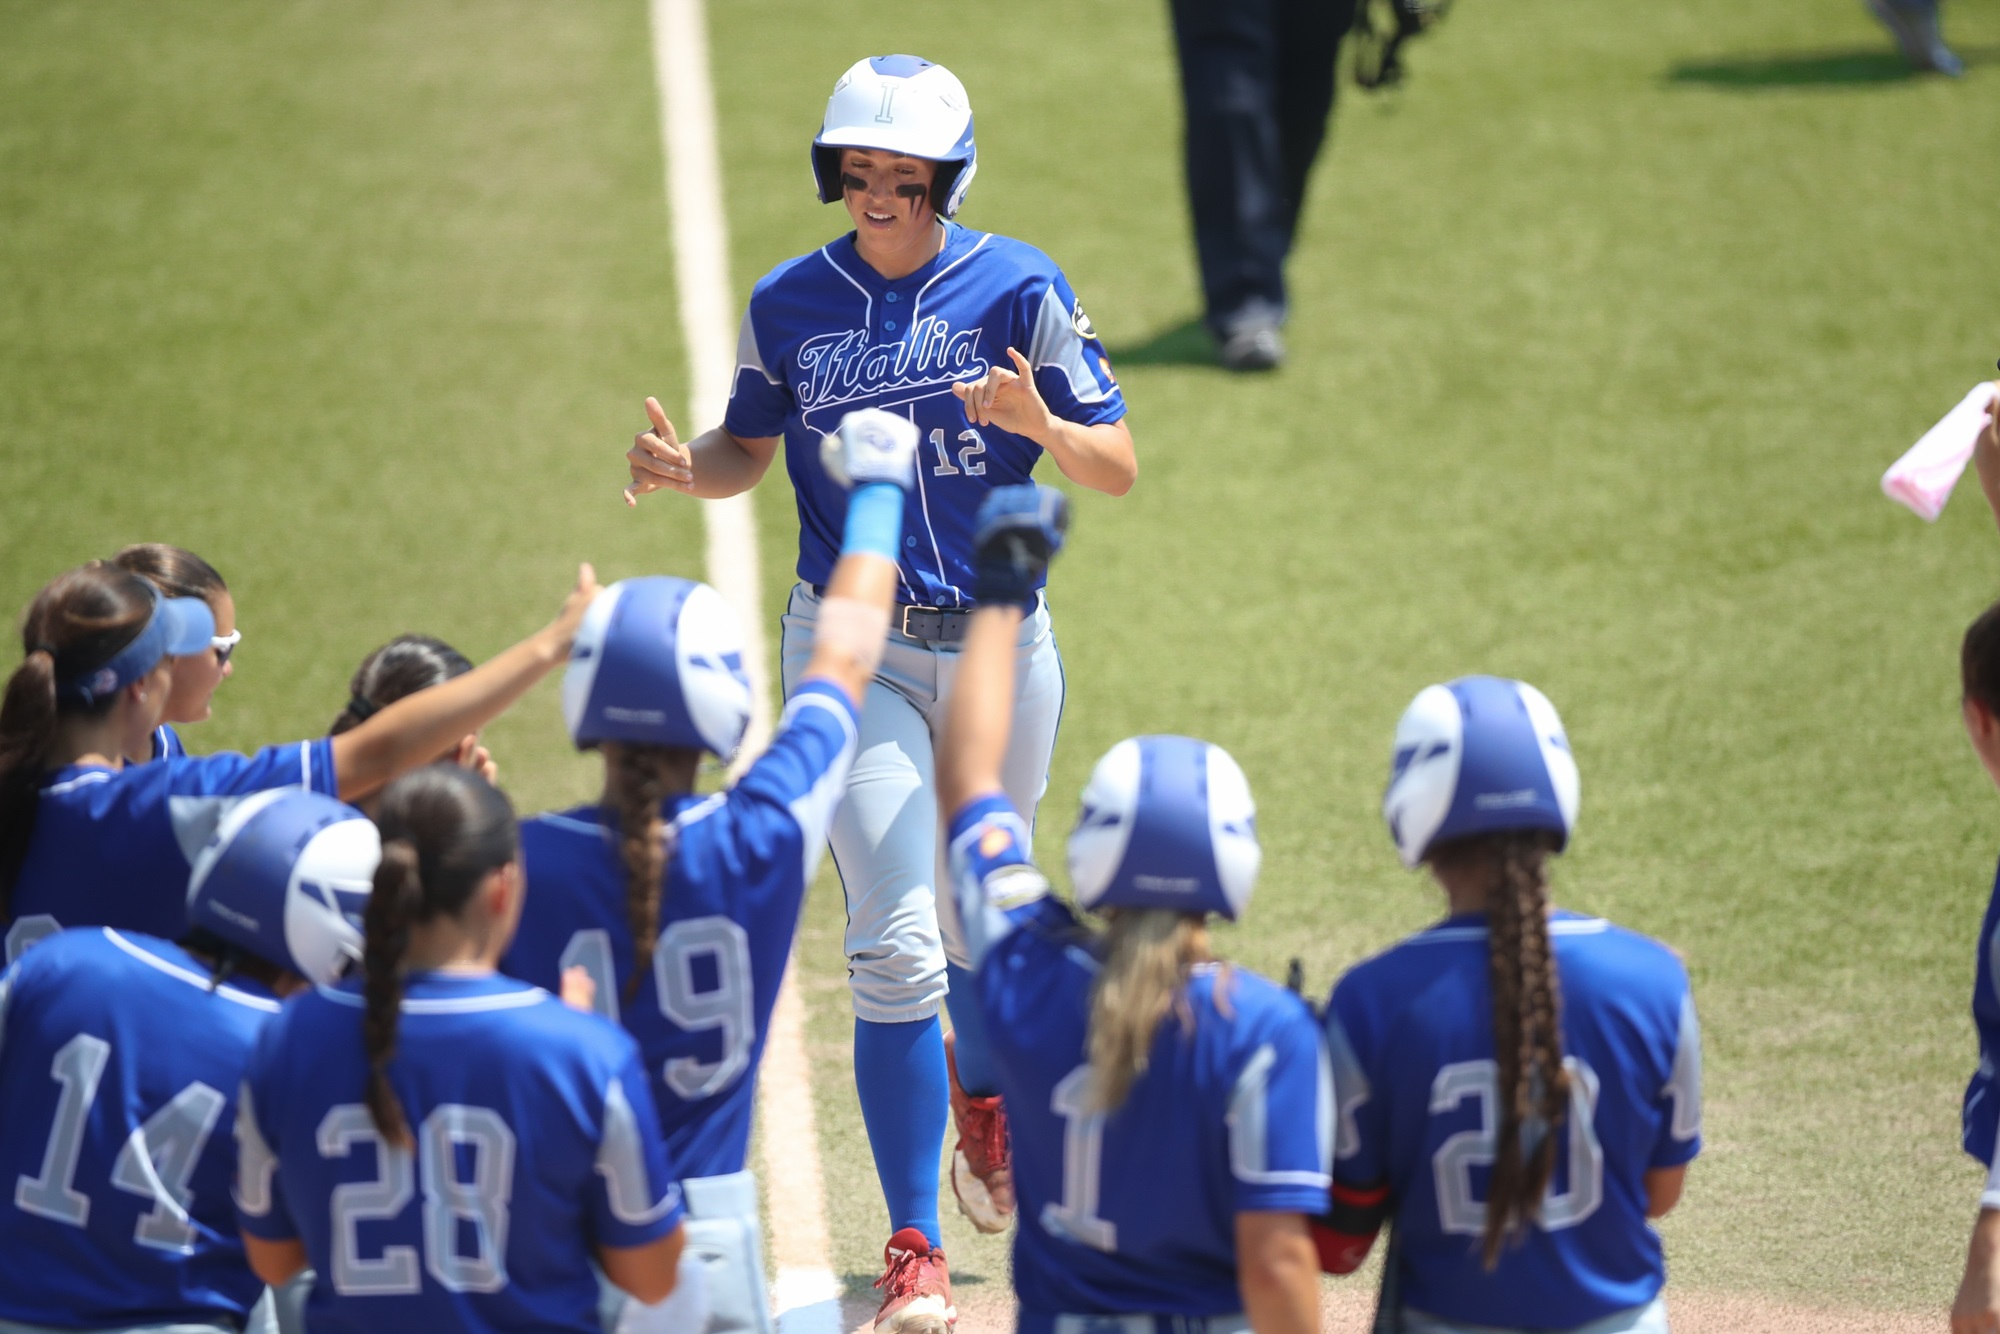 Italy welcomes Amanda Fama after her homer